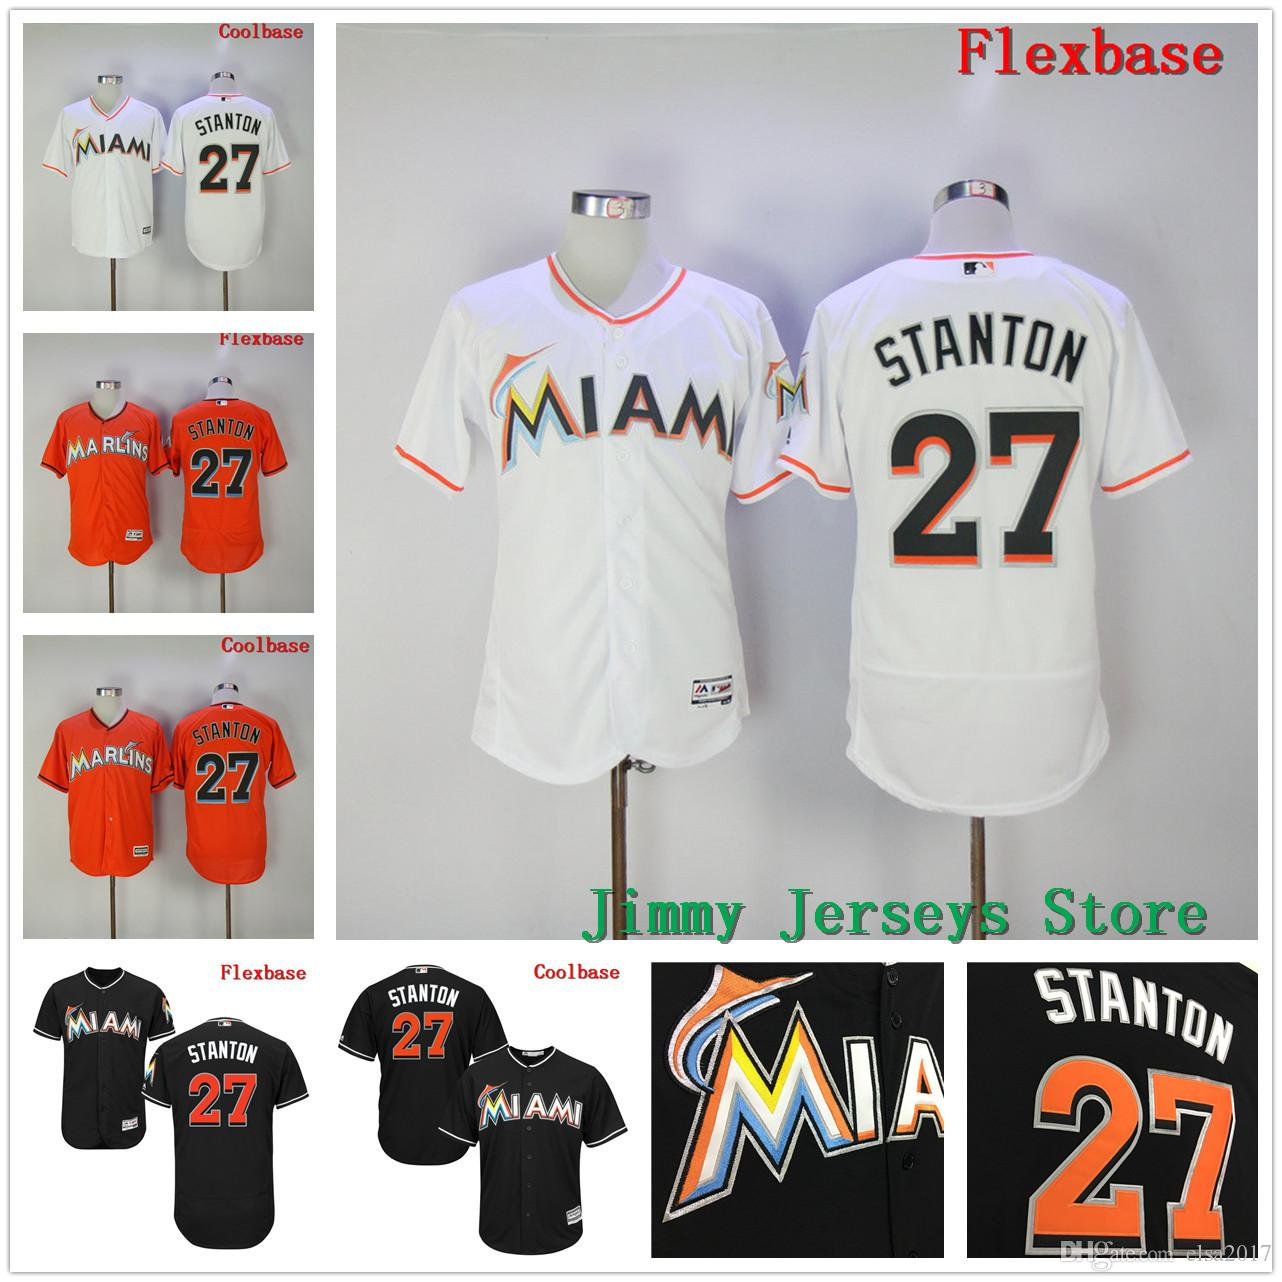 24372683d16 ... Black White Orange Gray 2017 2017 New 27 Giancarlo Stanton Jersey Flex Base  Cool Base Mlb Stitched Miami Marlins Jerseys ...